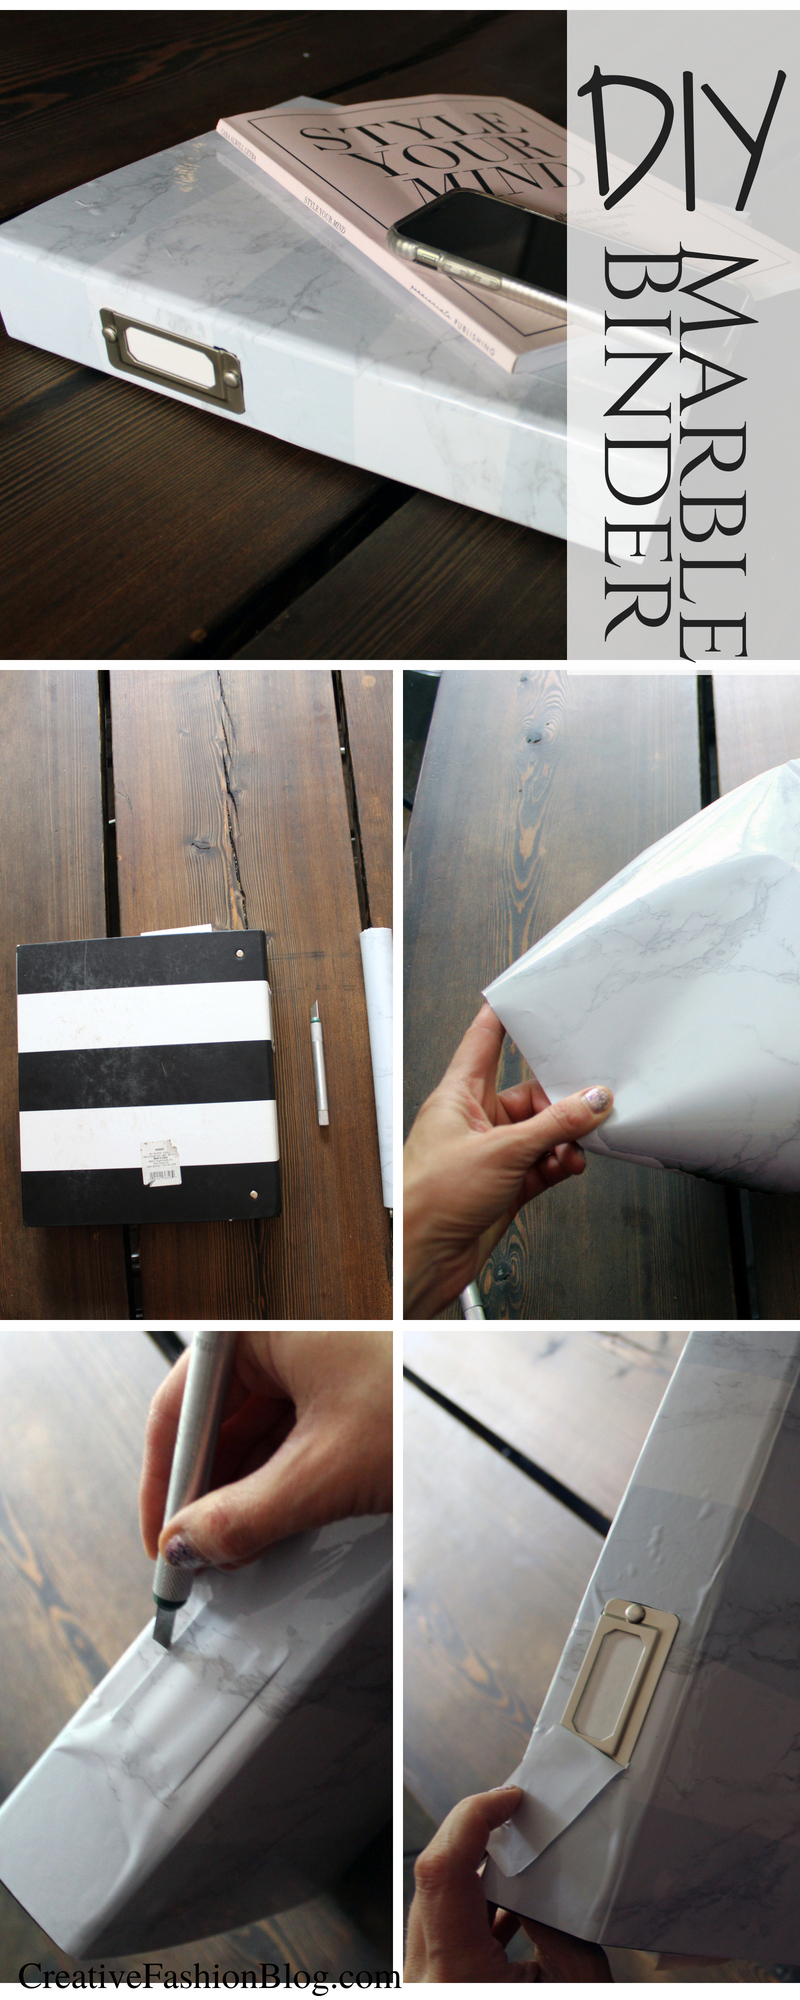 Marble binder DIY craft project .